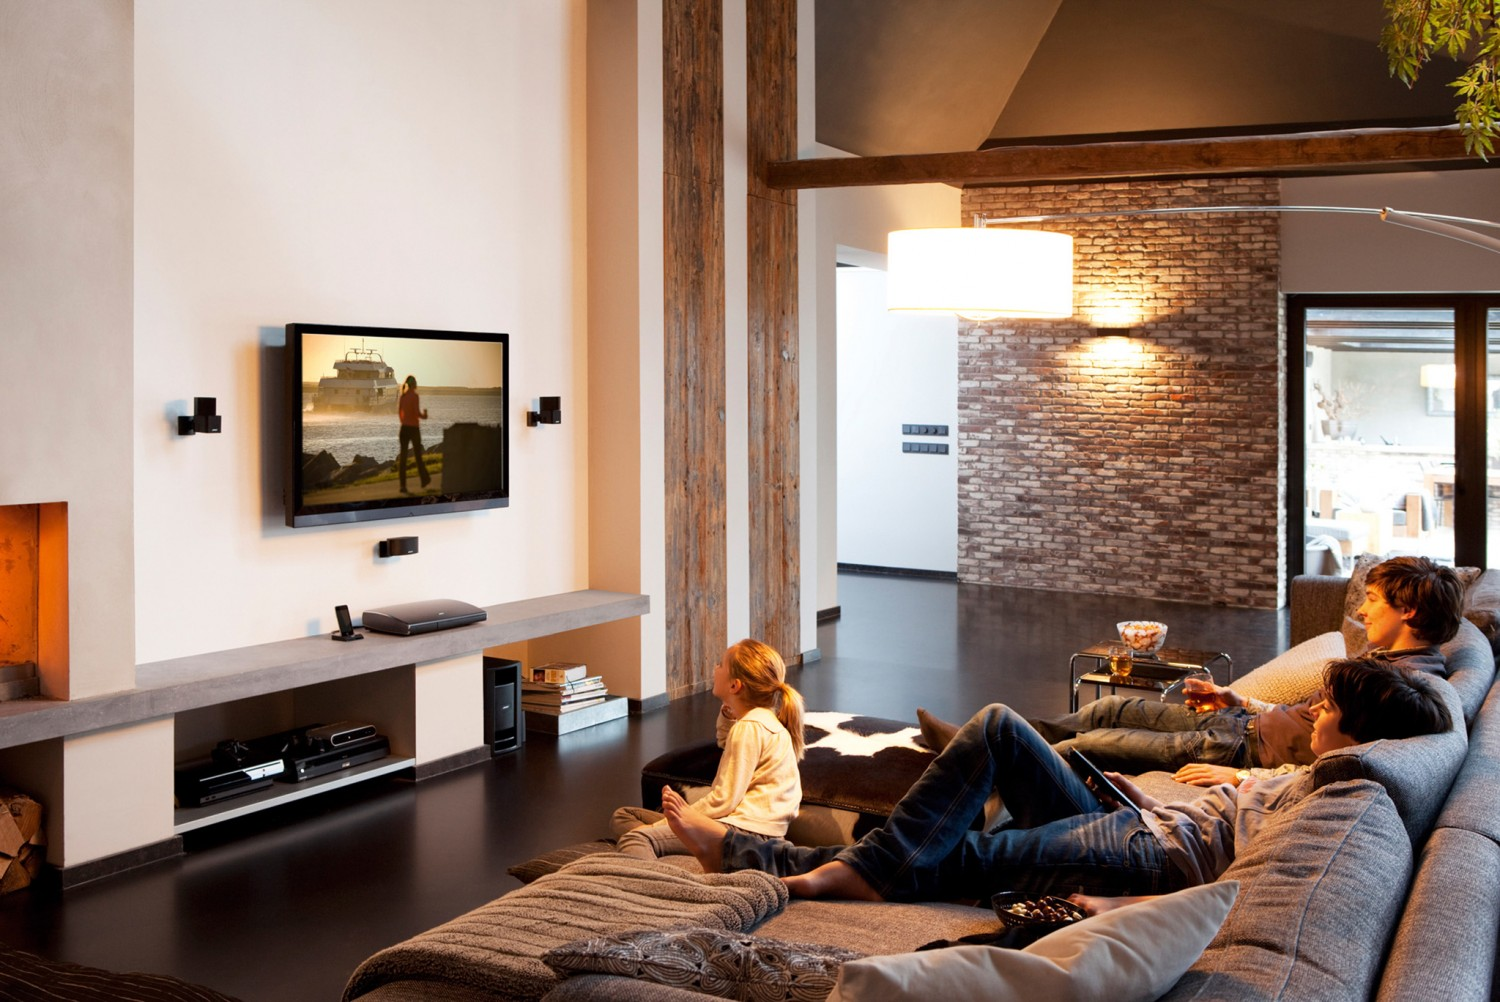 Test Lautsprecher Surround Bose Lifestyle 535 Series Ii